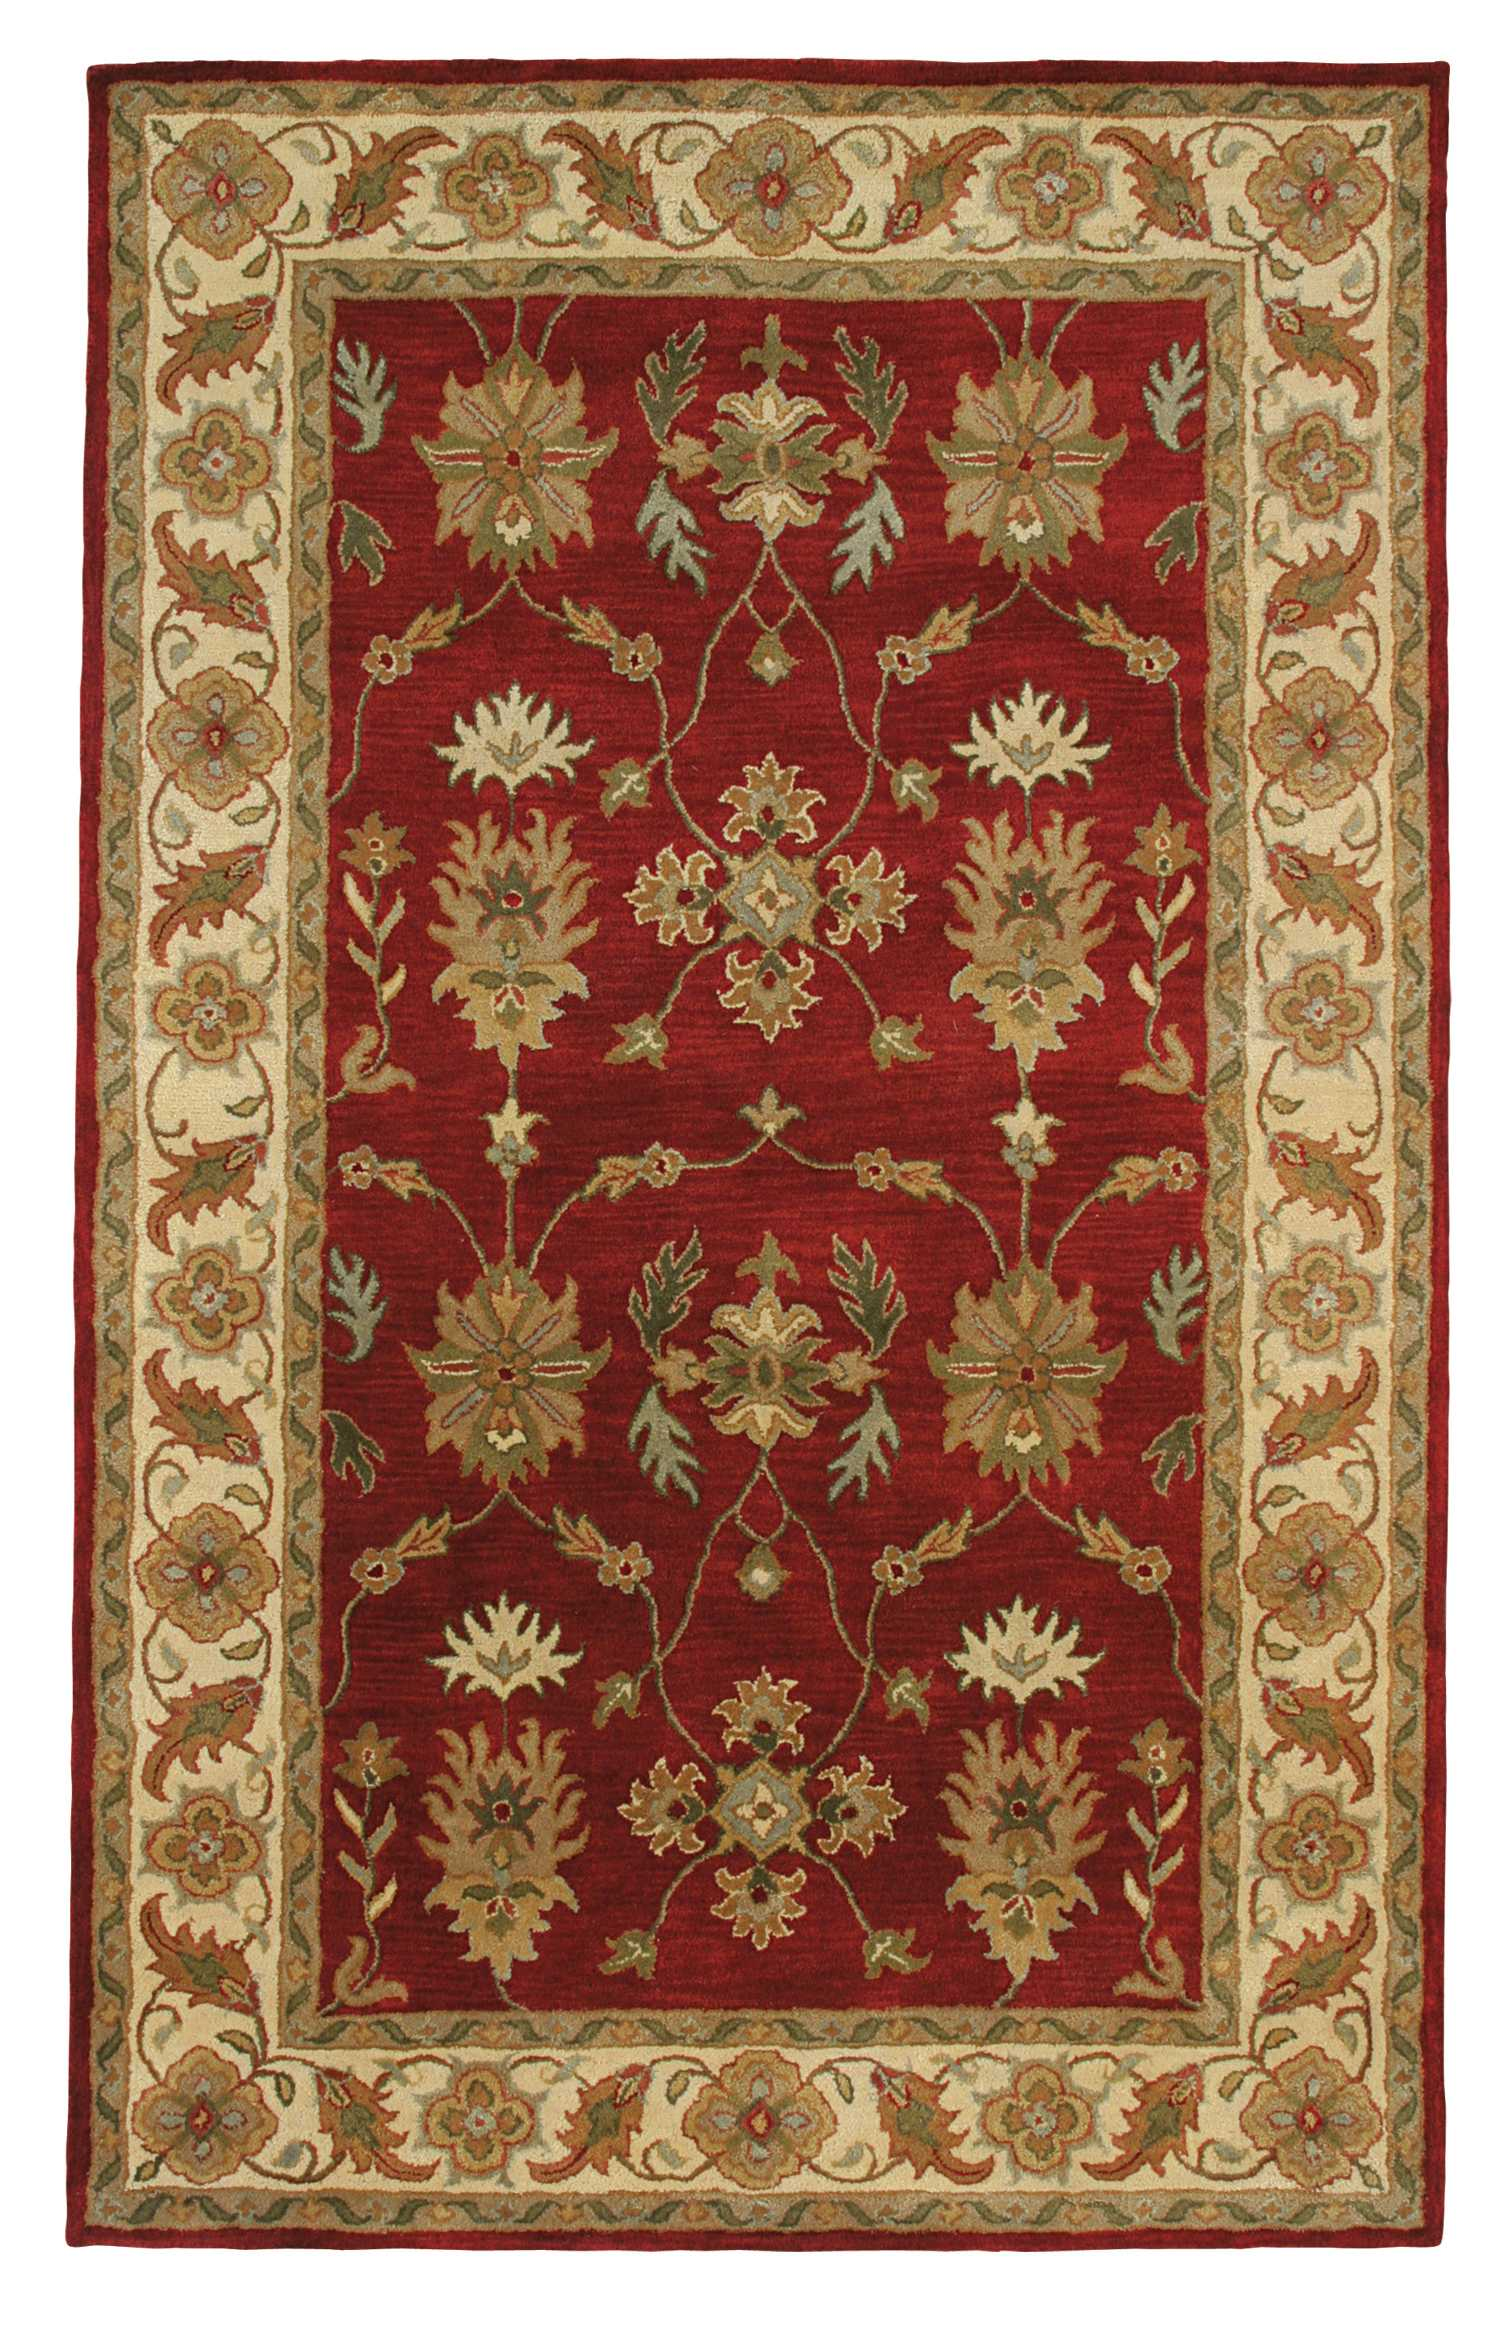 Dynamic Rugs Charisma Classic Red/ivory 1403 Area Rug